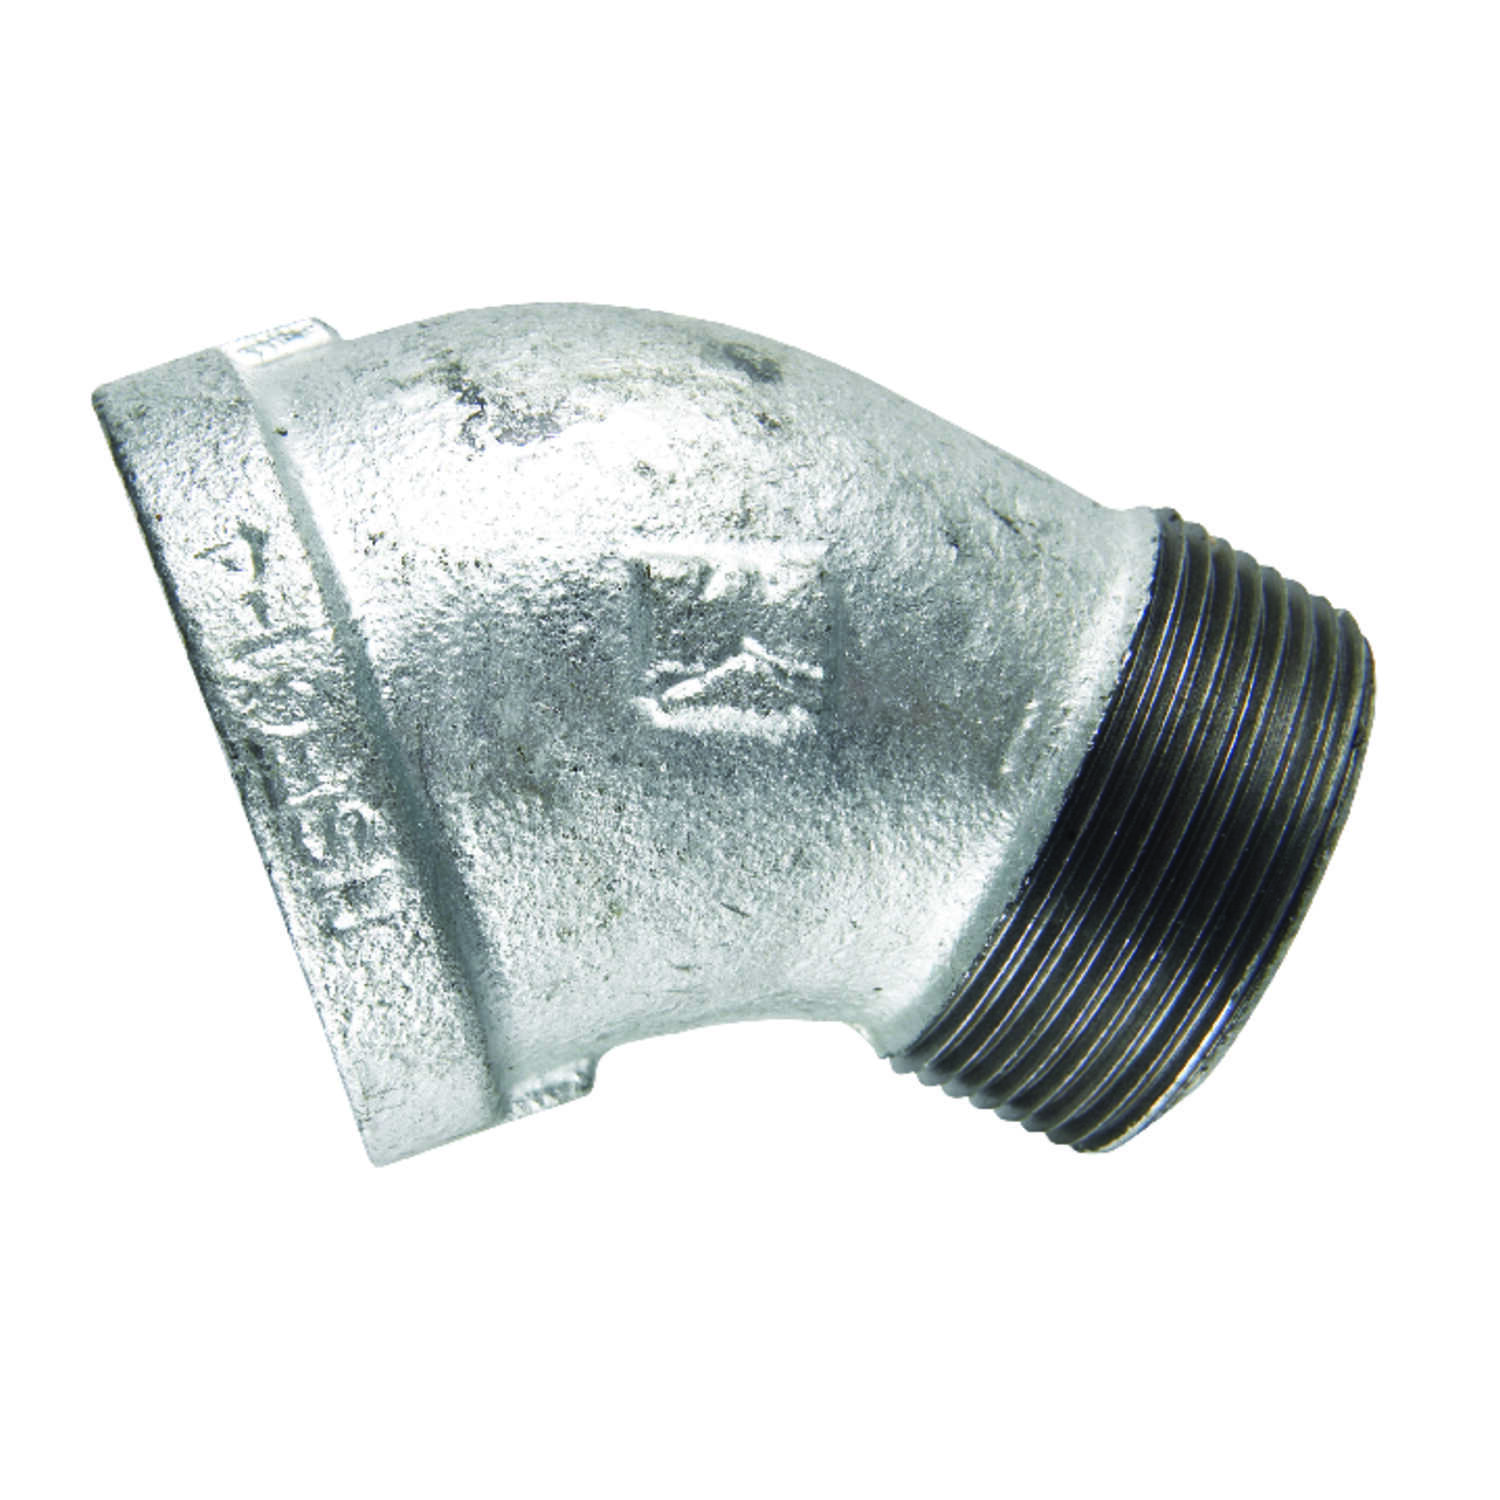 B & K  3/4 in. FPT   x 3/4 in. Dia. MPT  Galvanized  Malleable Iron  Street Elbow